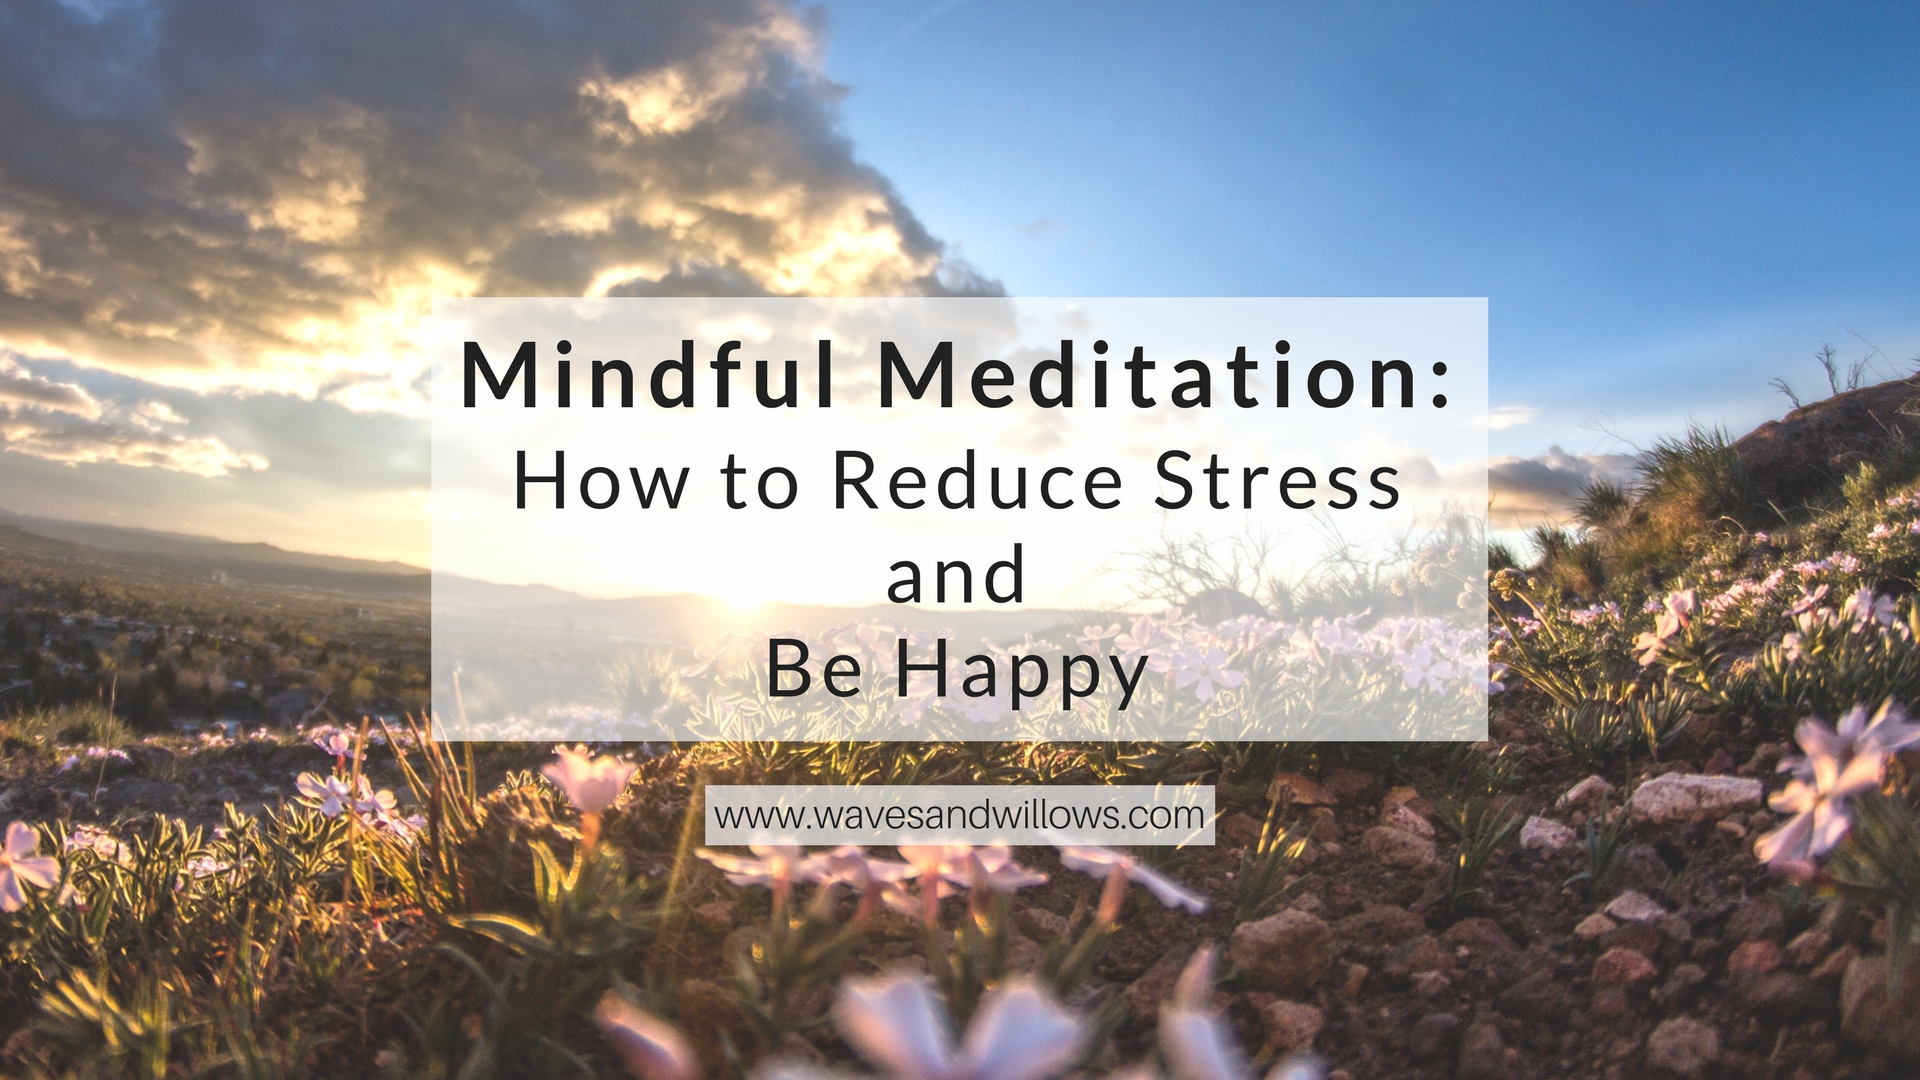 Learn about mindful meditation and how it can reduce stress and improve your life. www.wavesandwillows.com